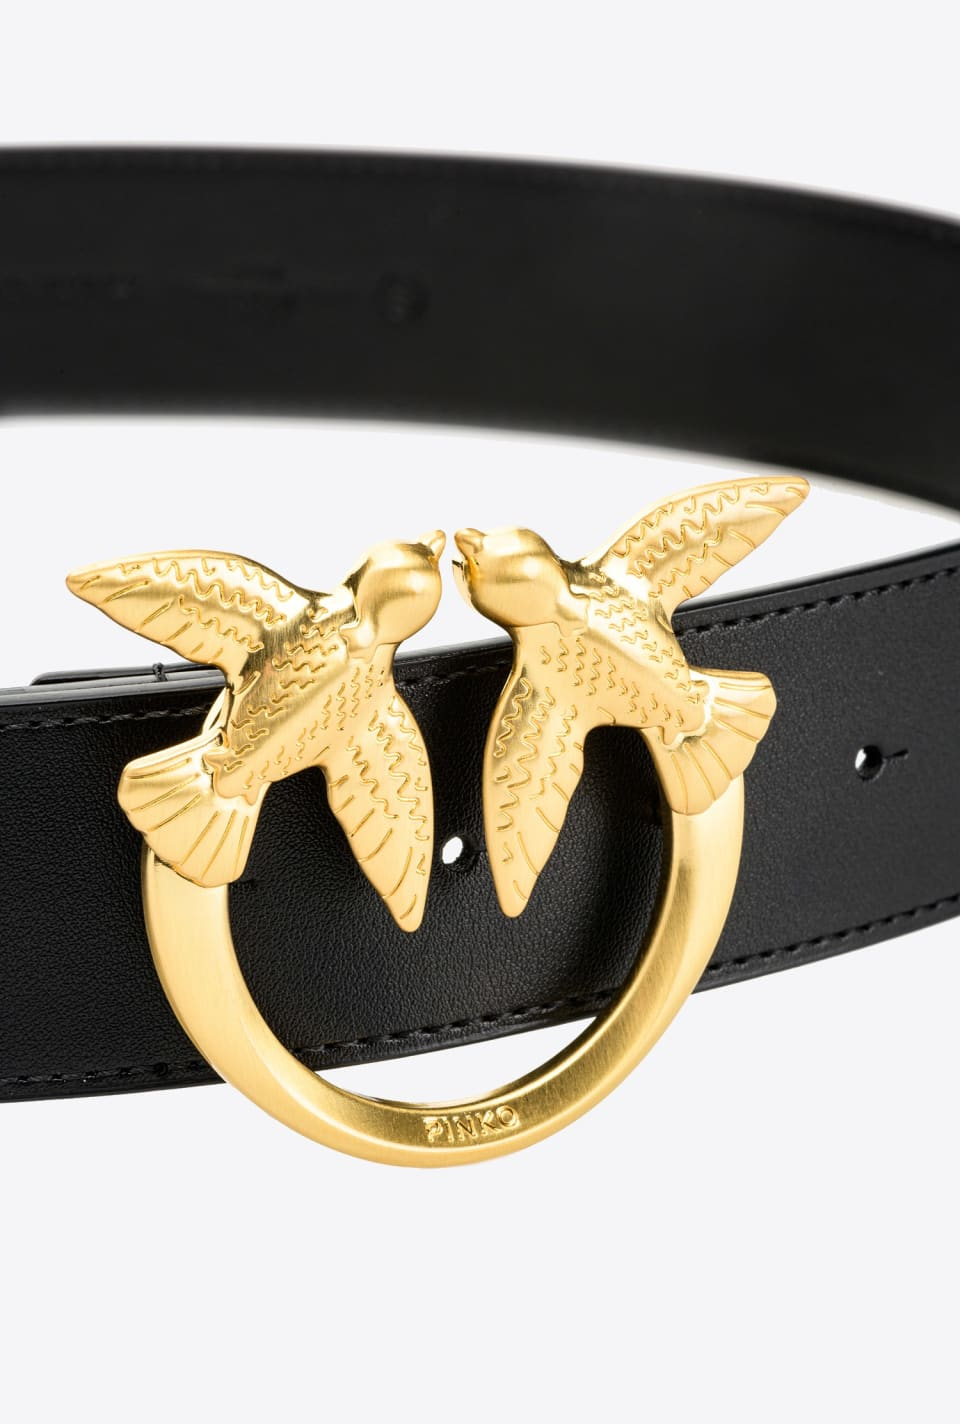 Leather Love Birds belt - Pinko